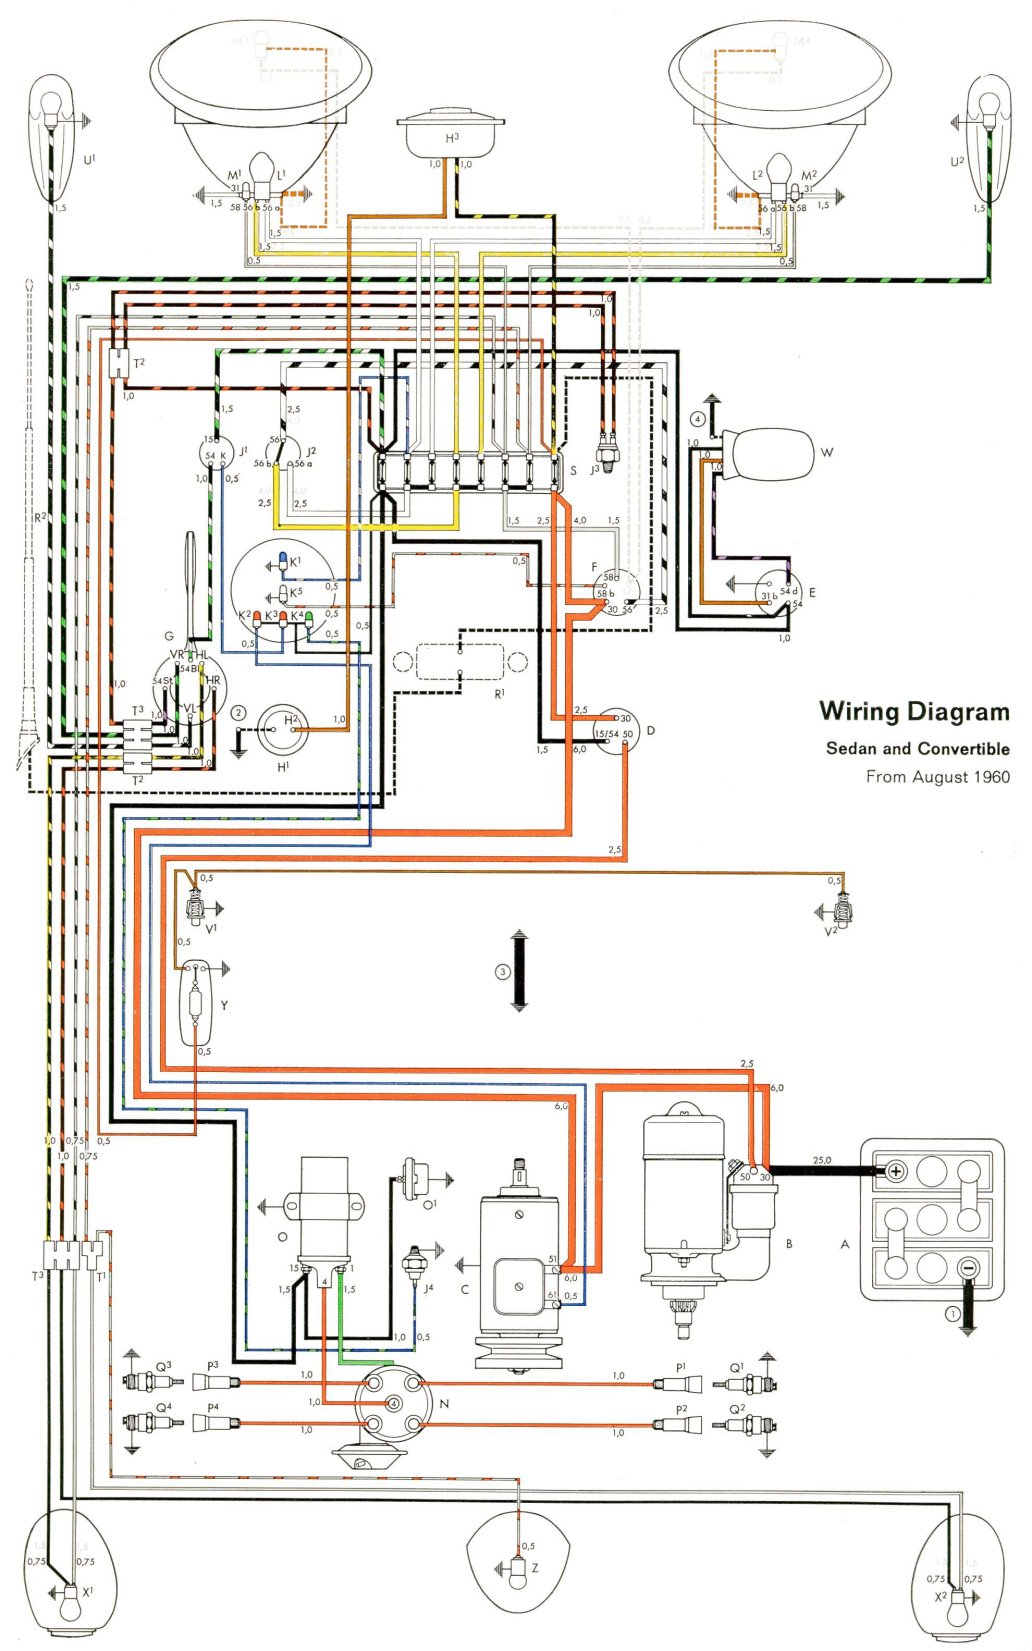 bug_61 1961 beetle wiring diagram thegoldenbug com 1973 Super Beetle Wiring Diagram at crackthecode.co